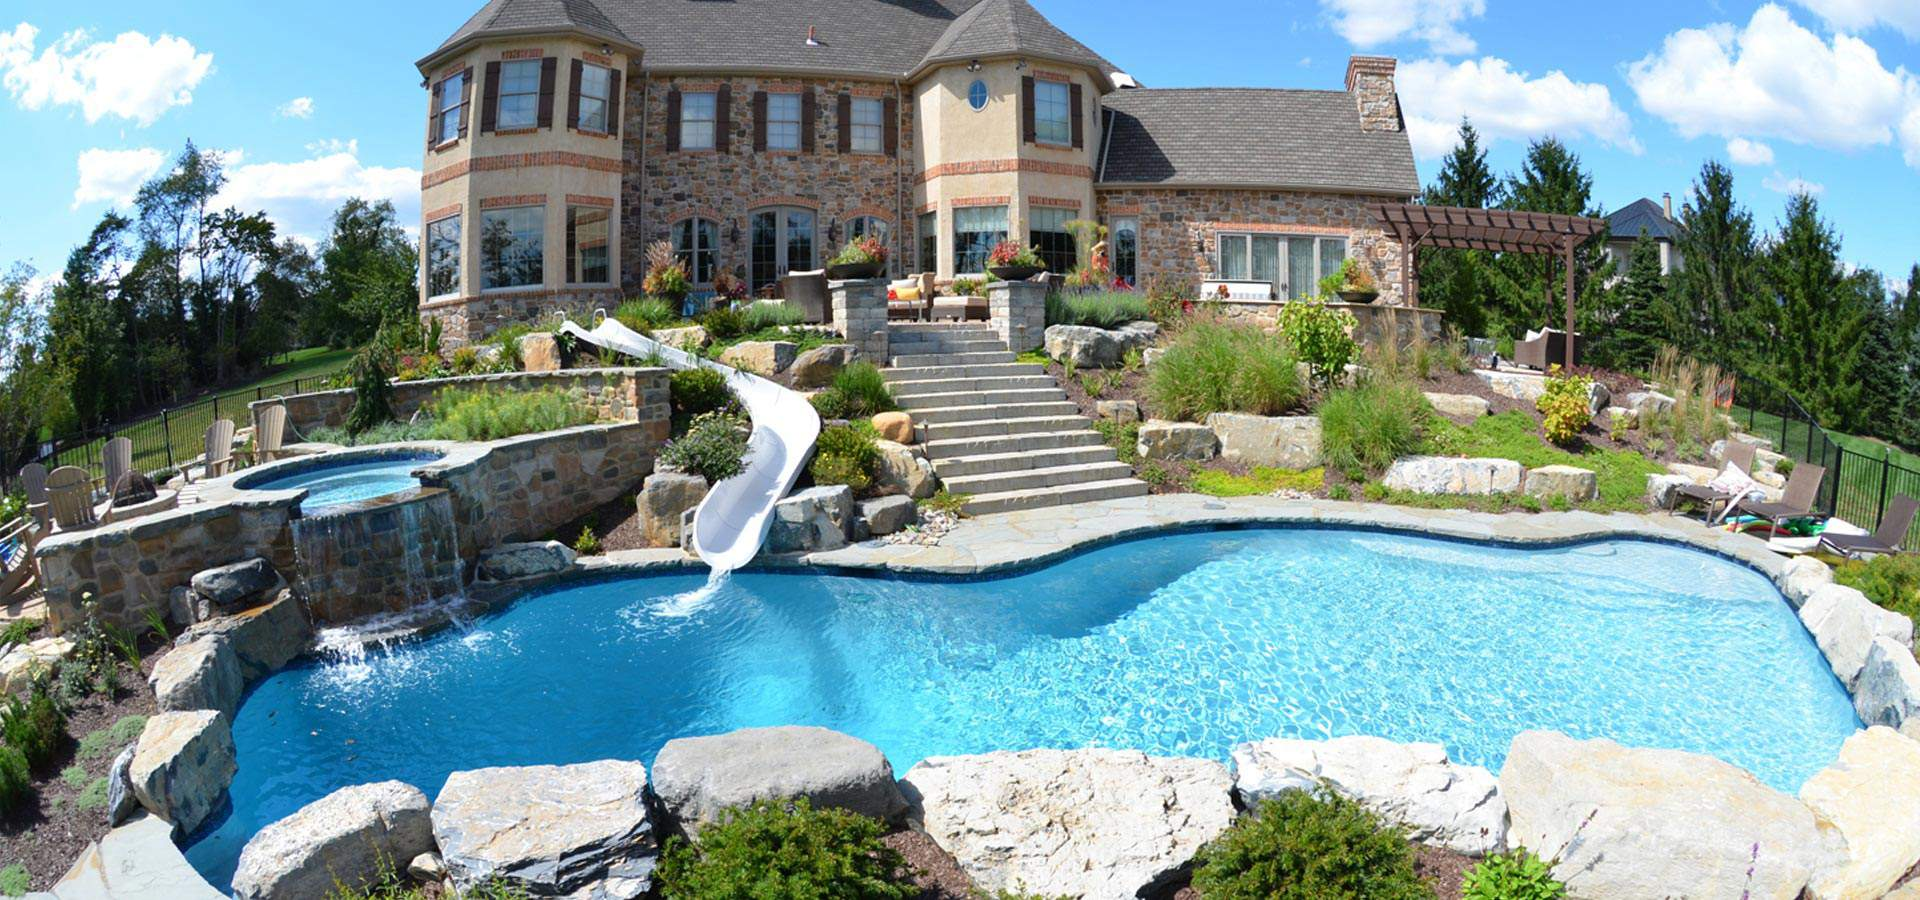 1 pool builder in lehigh valley pa best inground pools for Top pool builders